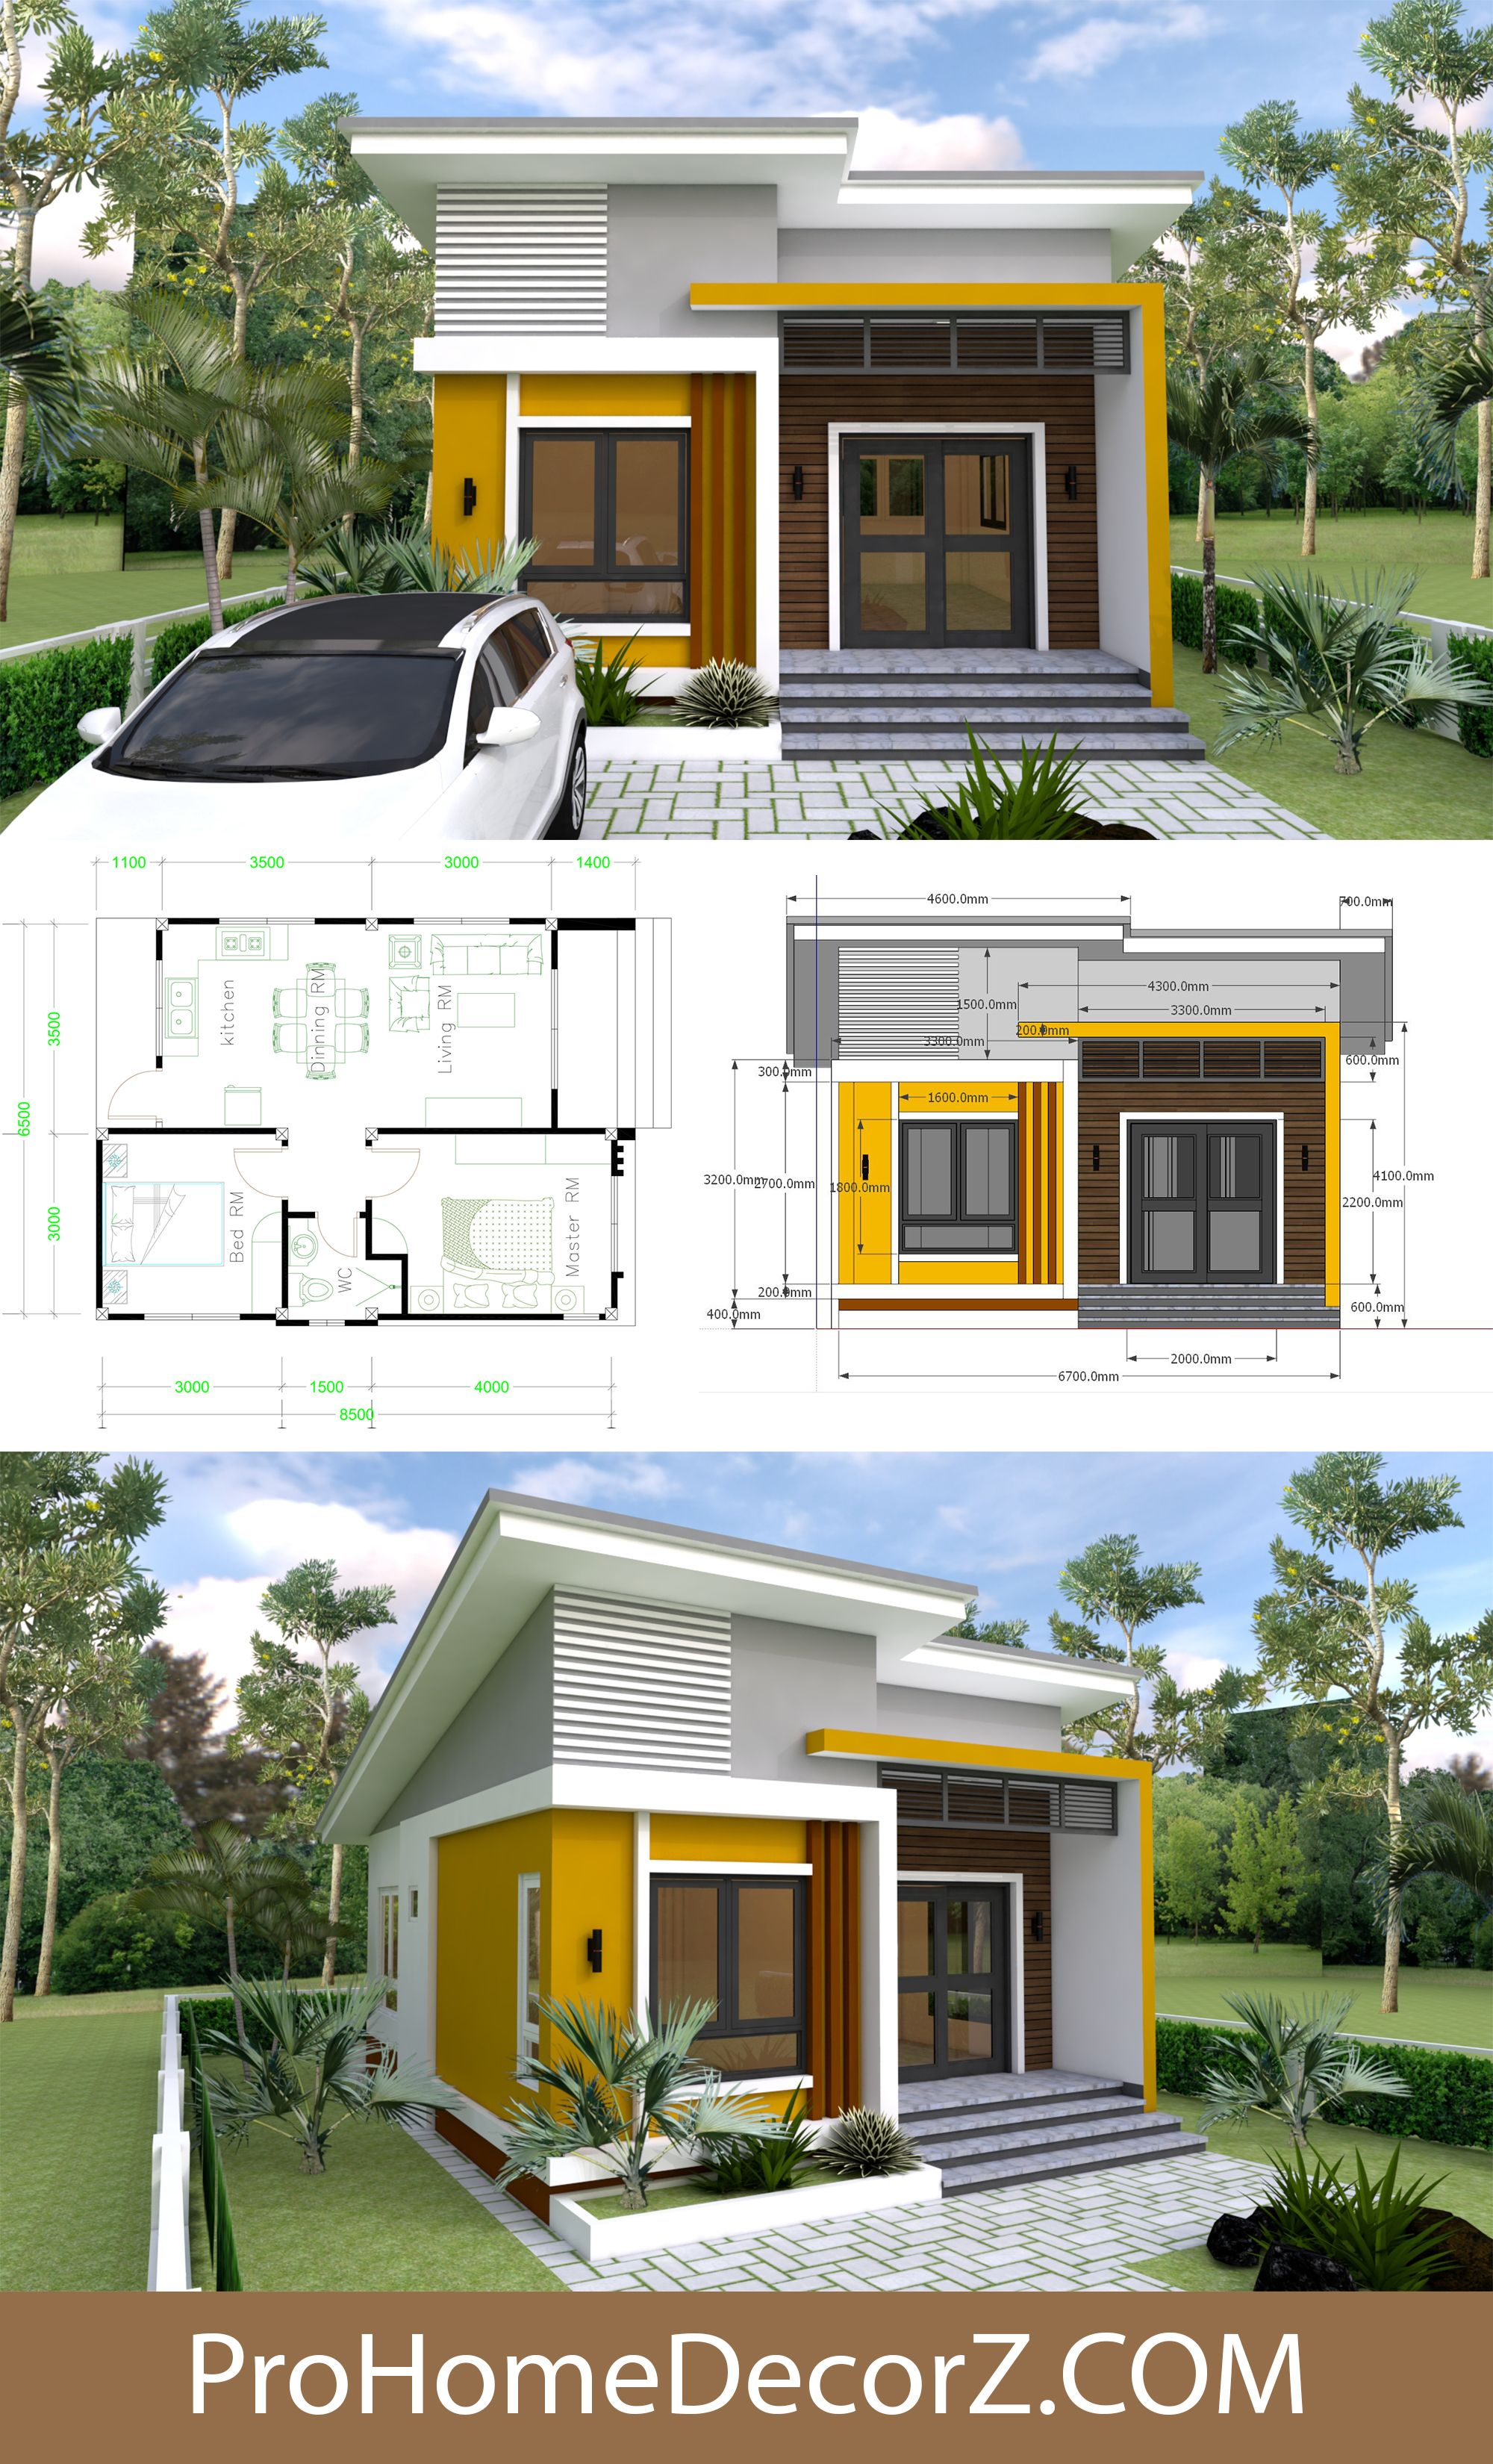 Small House Design 6 5x8 5 With Shed Roof 2 Bedrooms In 2020 Small House Design Small House Exteriors Best Small House Designs